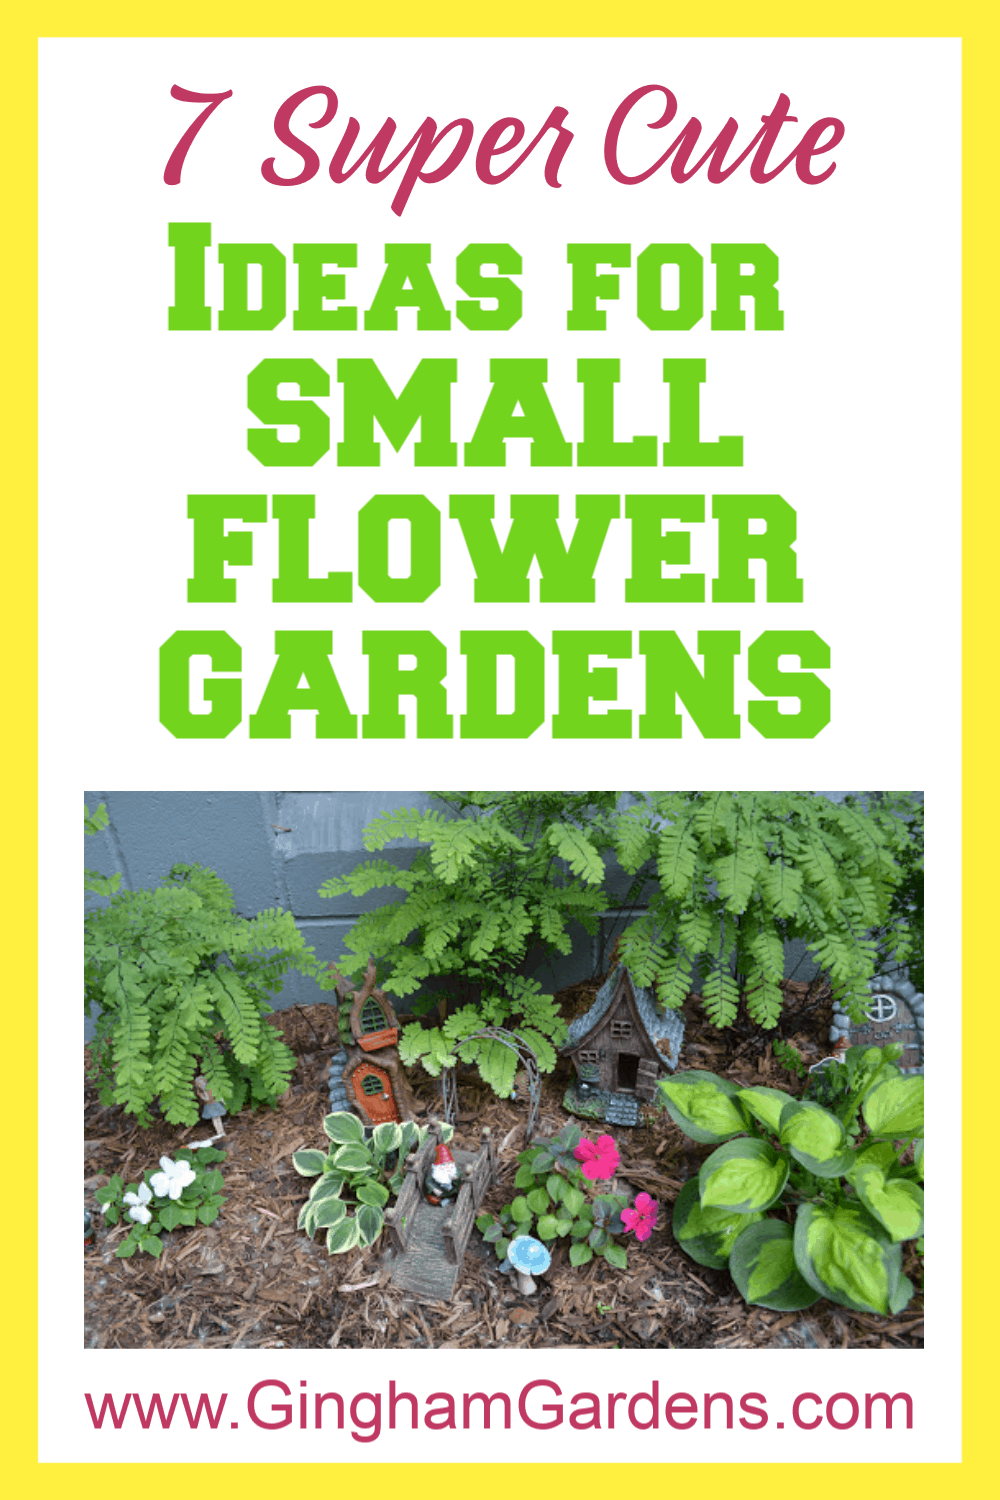 Image of Gnome Garden with Text Overlay - 7 Super Cute Ideas for Small Flower Gardens